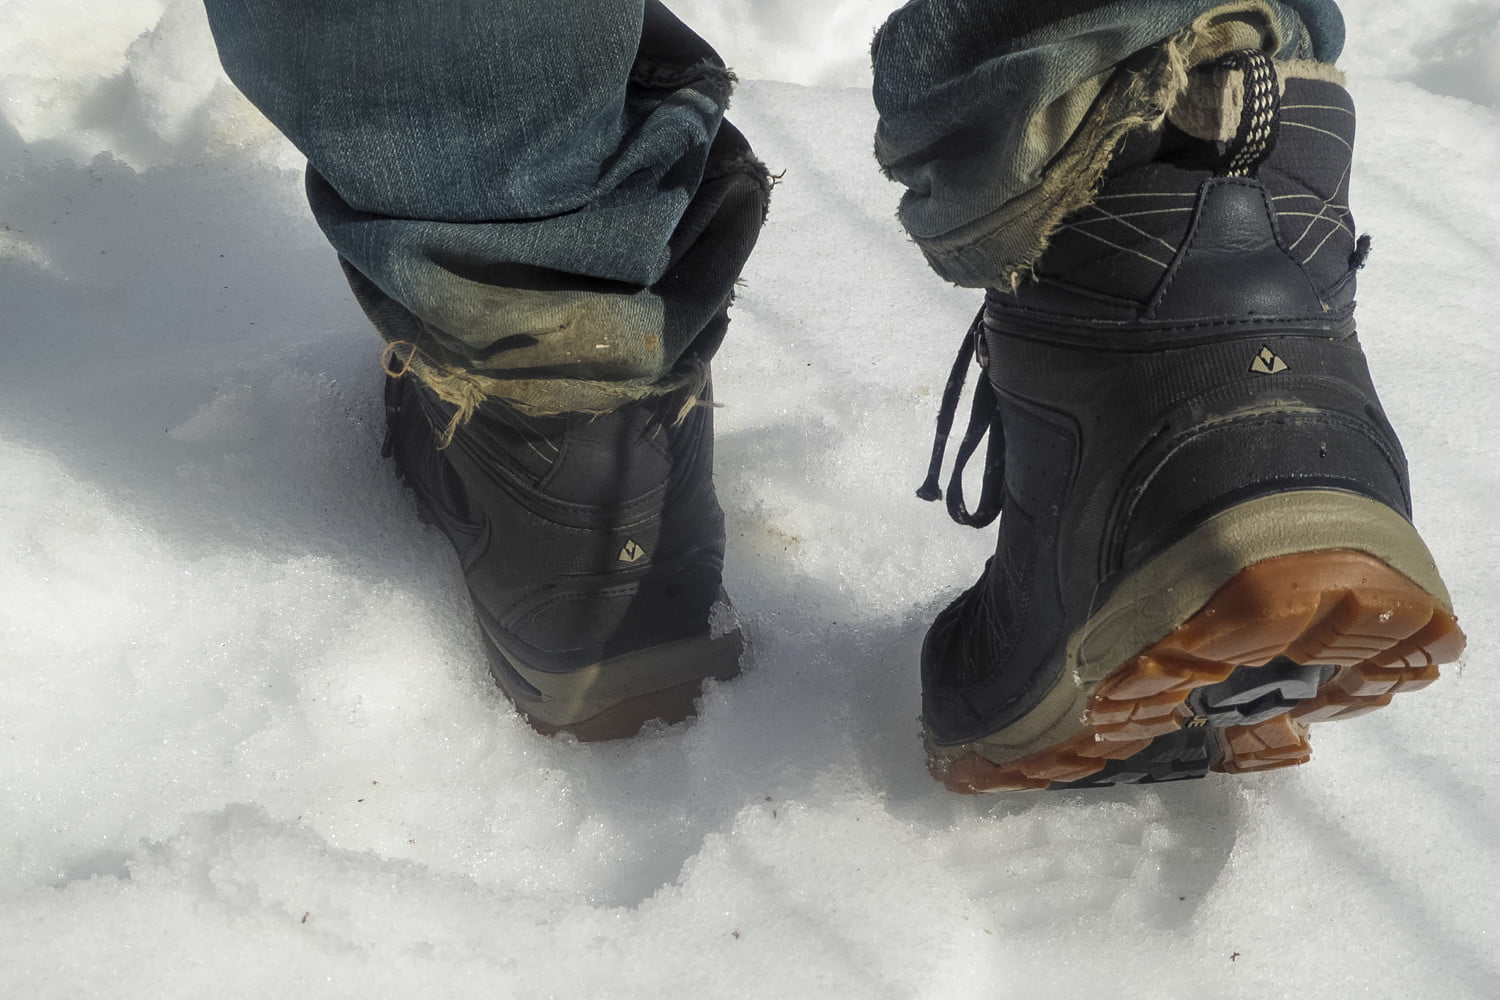 Comfort-Hunting-Boot-10-Best-Winter-Boots-Tested-and-Reviewed